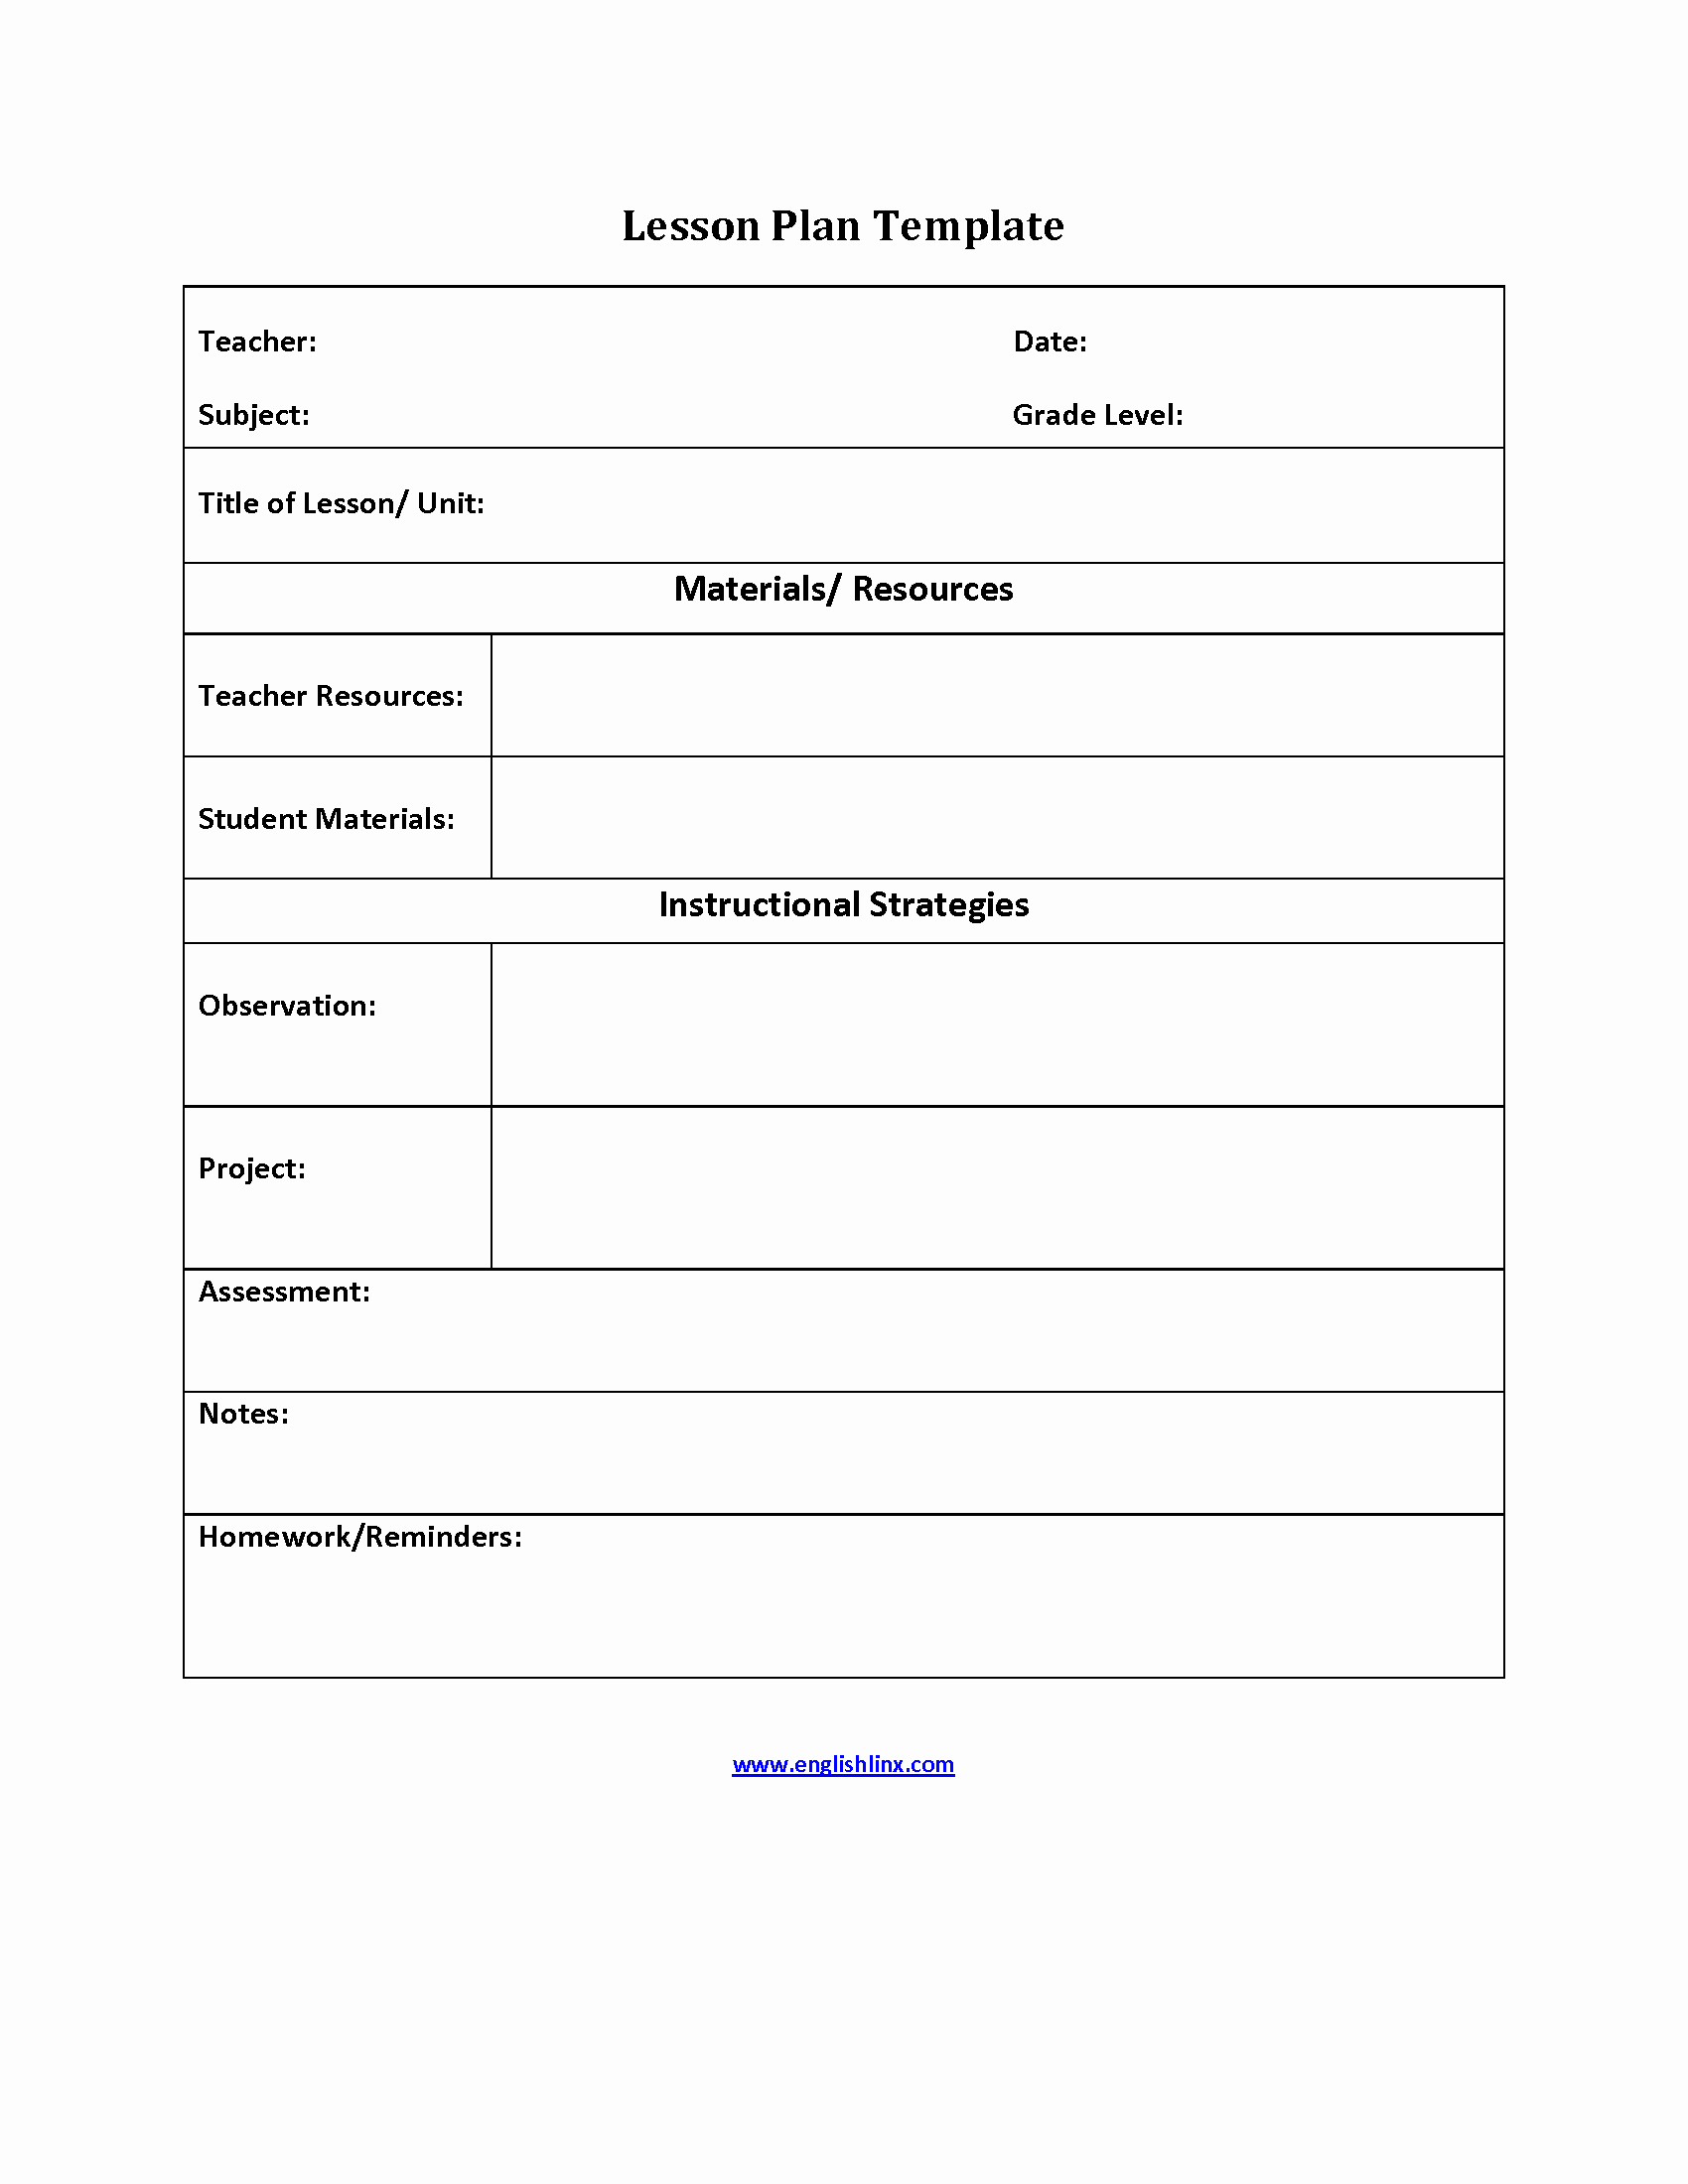 Simple Lesson Plan Template Awesome Englishlinx